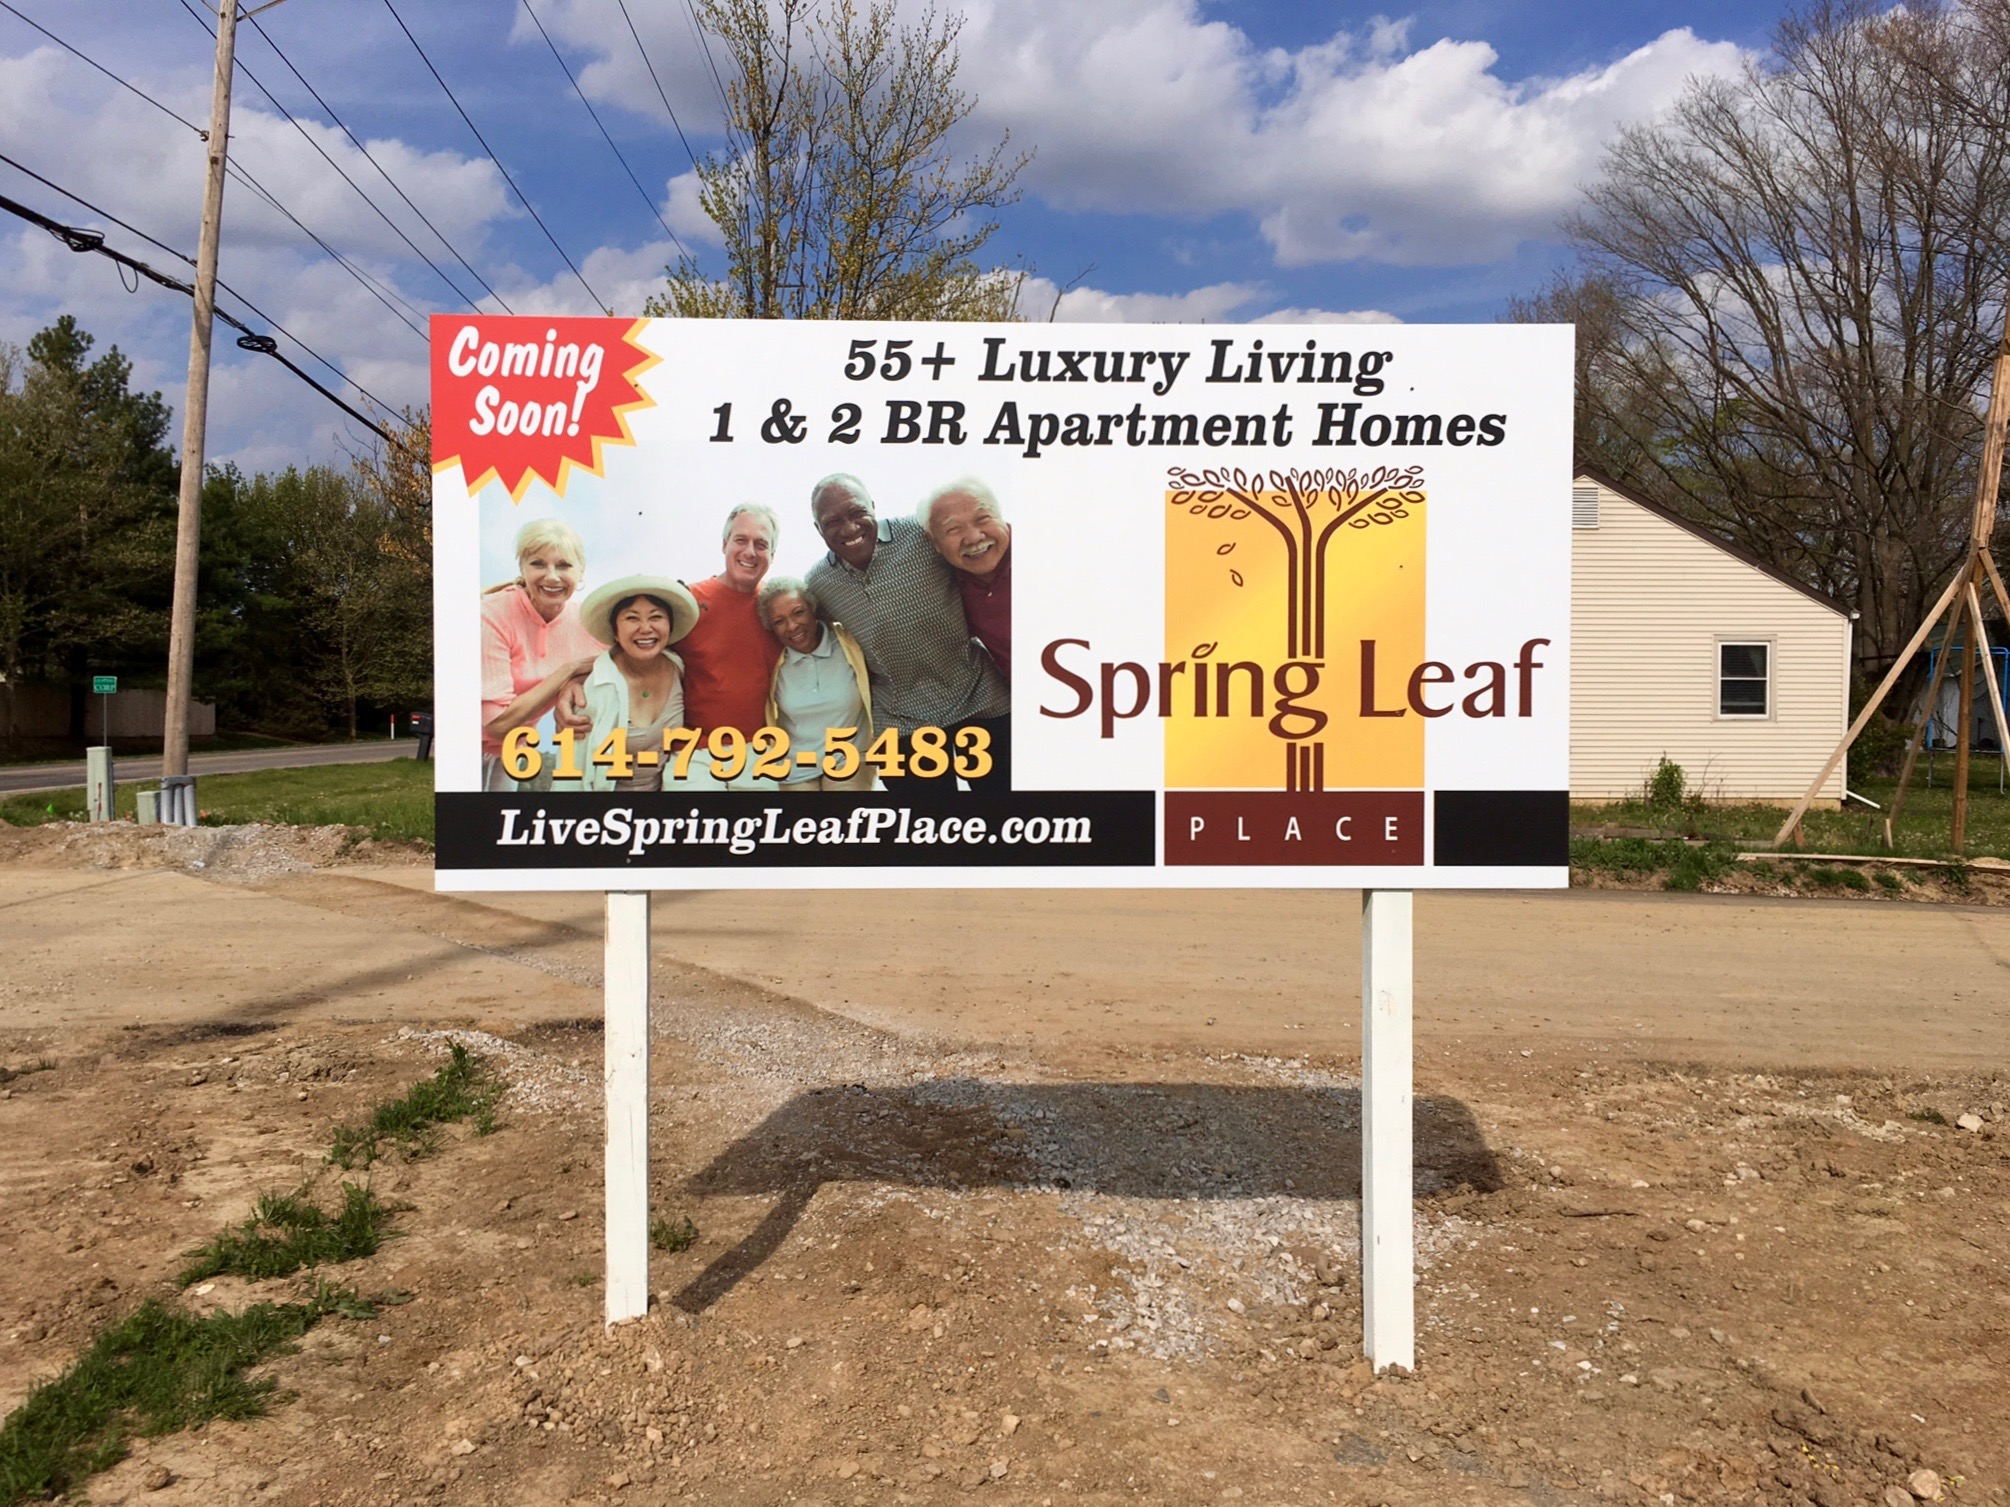 Spring Leaf Place Marketing Sign